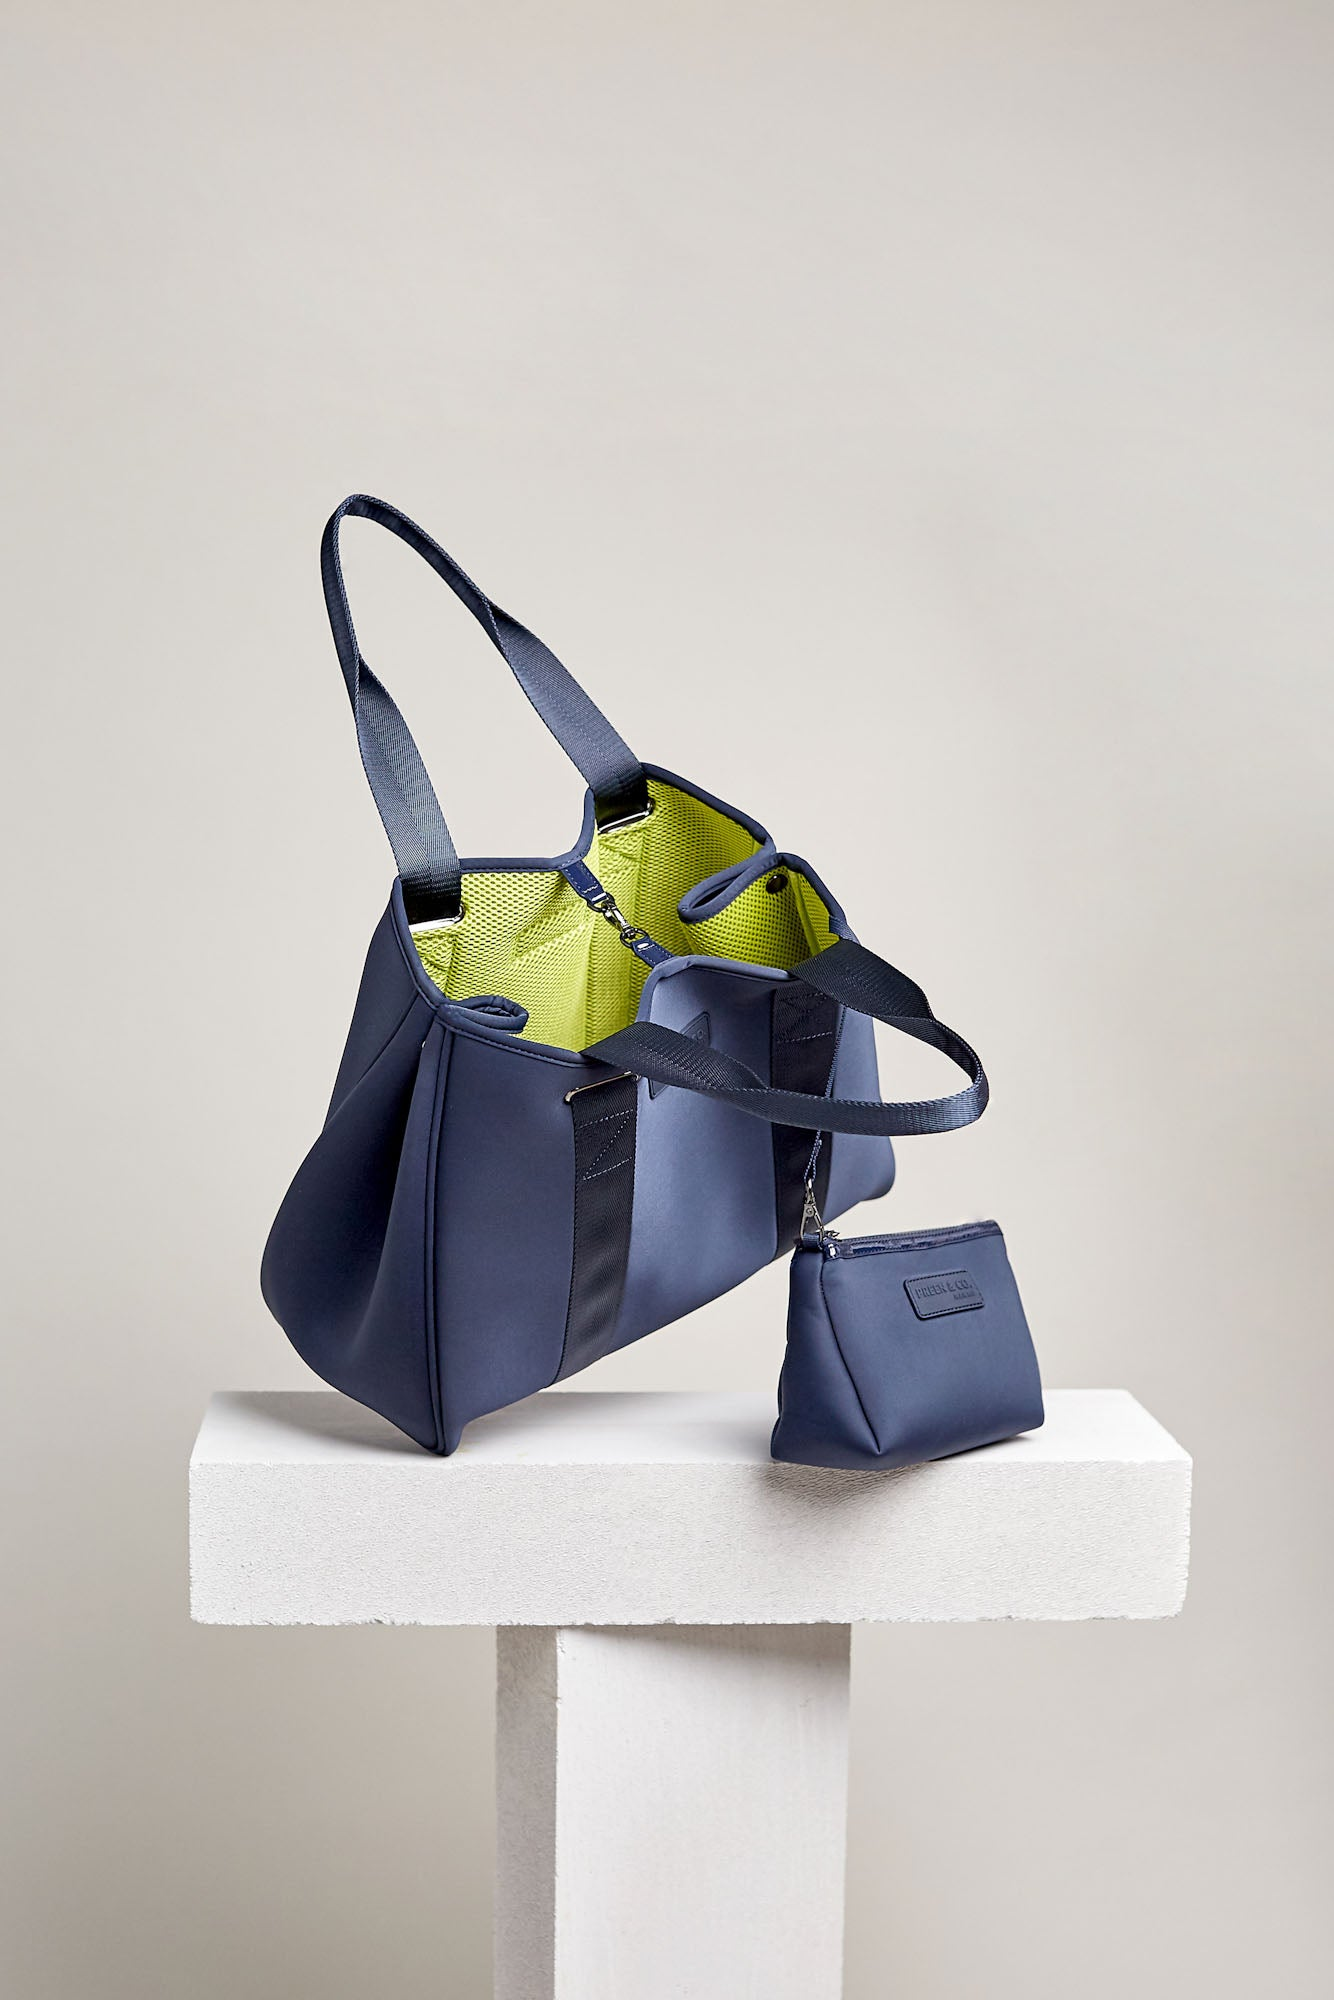 Dark blue neoprene and neon yellow mesh tote bag. Luxury sport and travel style bags